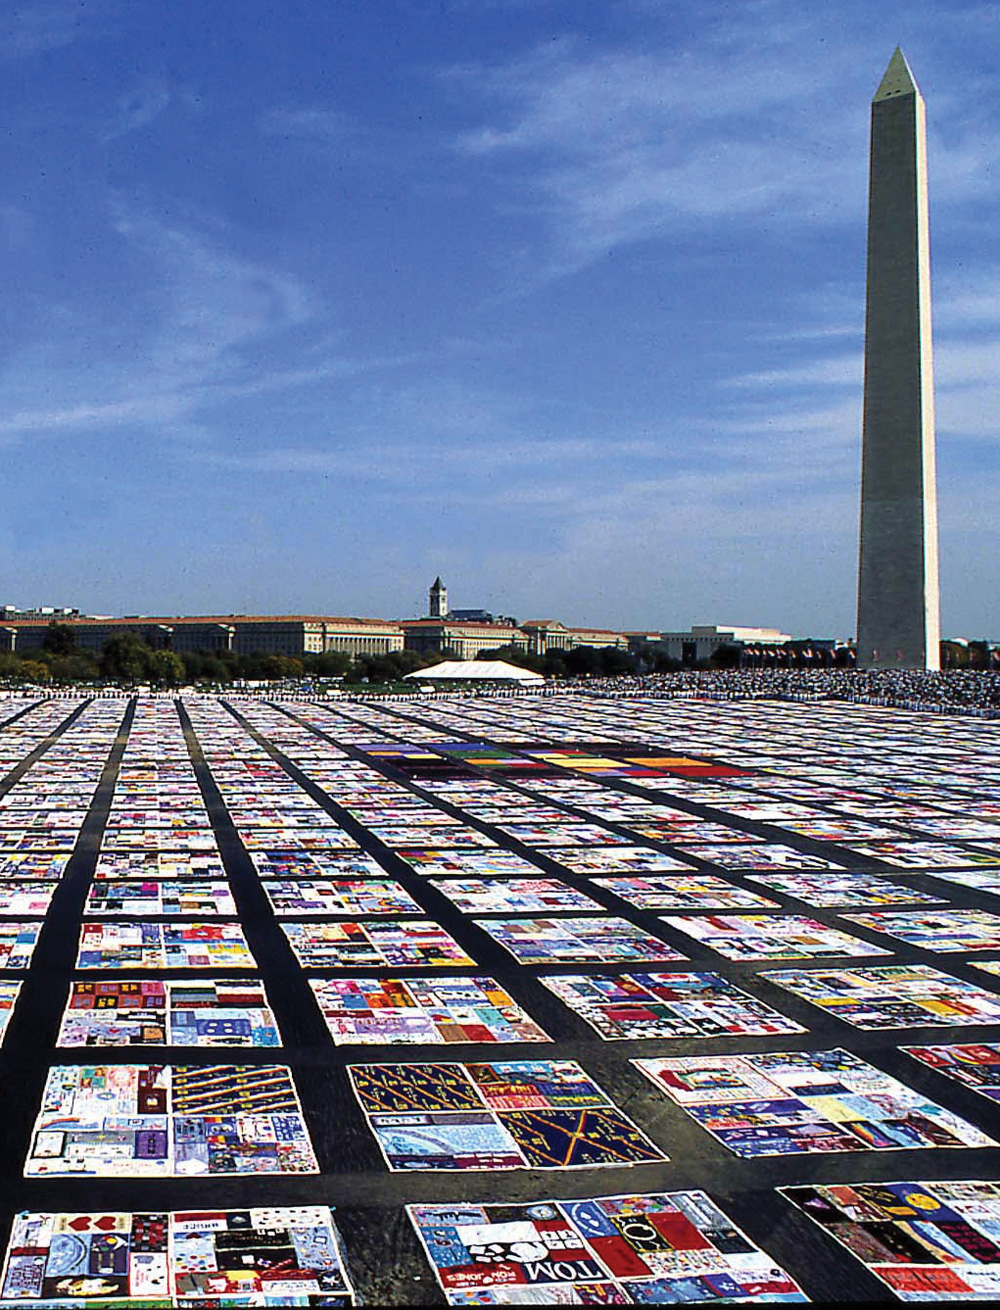 AIDS memorial quilts laid out in front of the Washington Monument